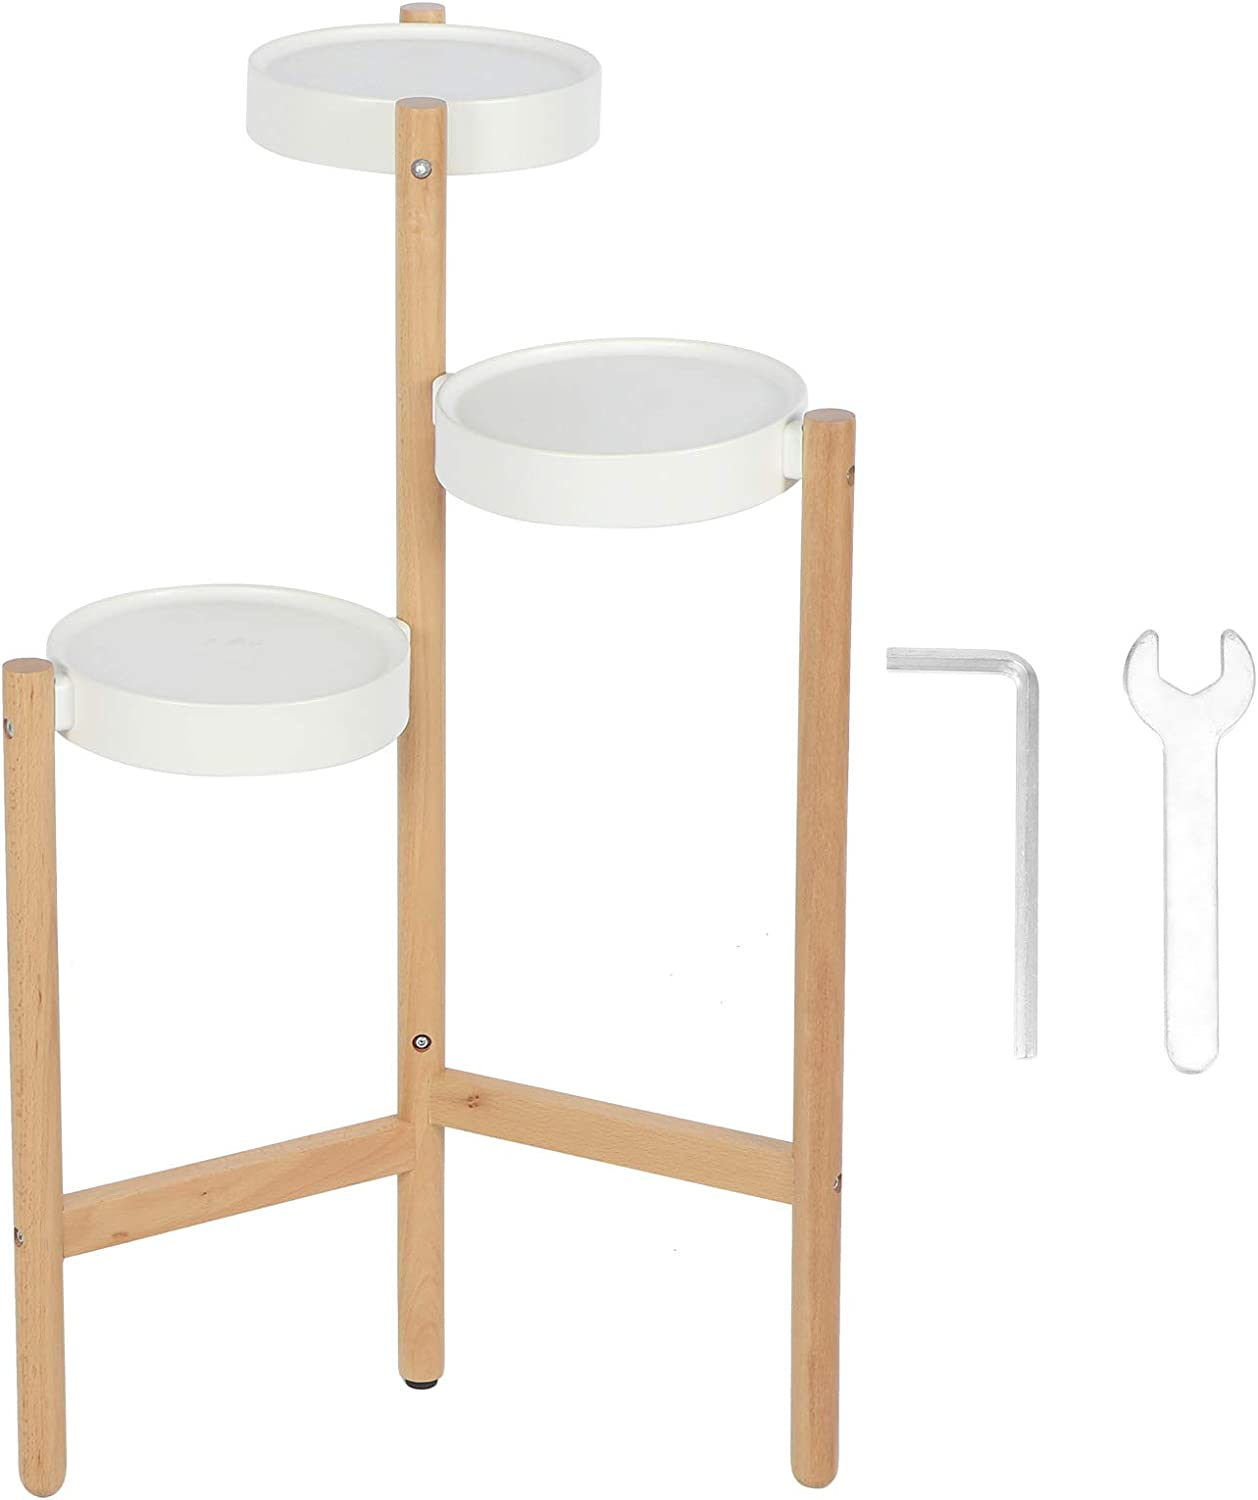 3 Tier Flower Plant Stand Pots Display Rack Shelf Bombing free shipping Holder Max 45% OFF Ind for